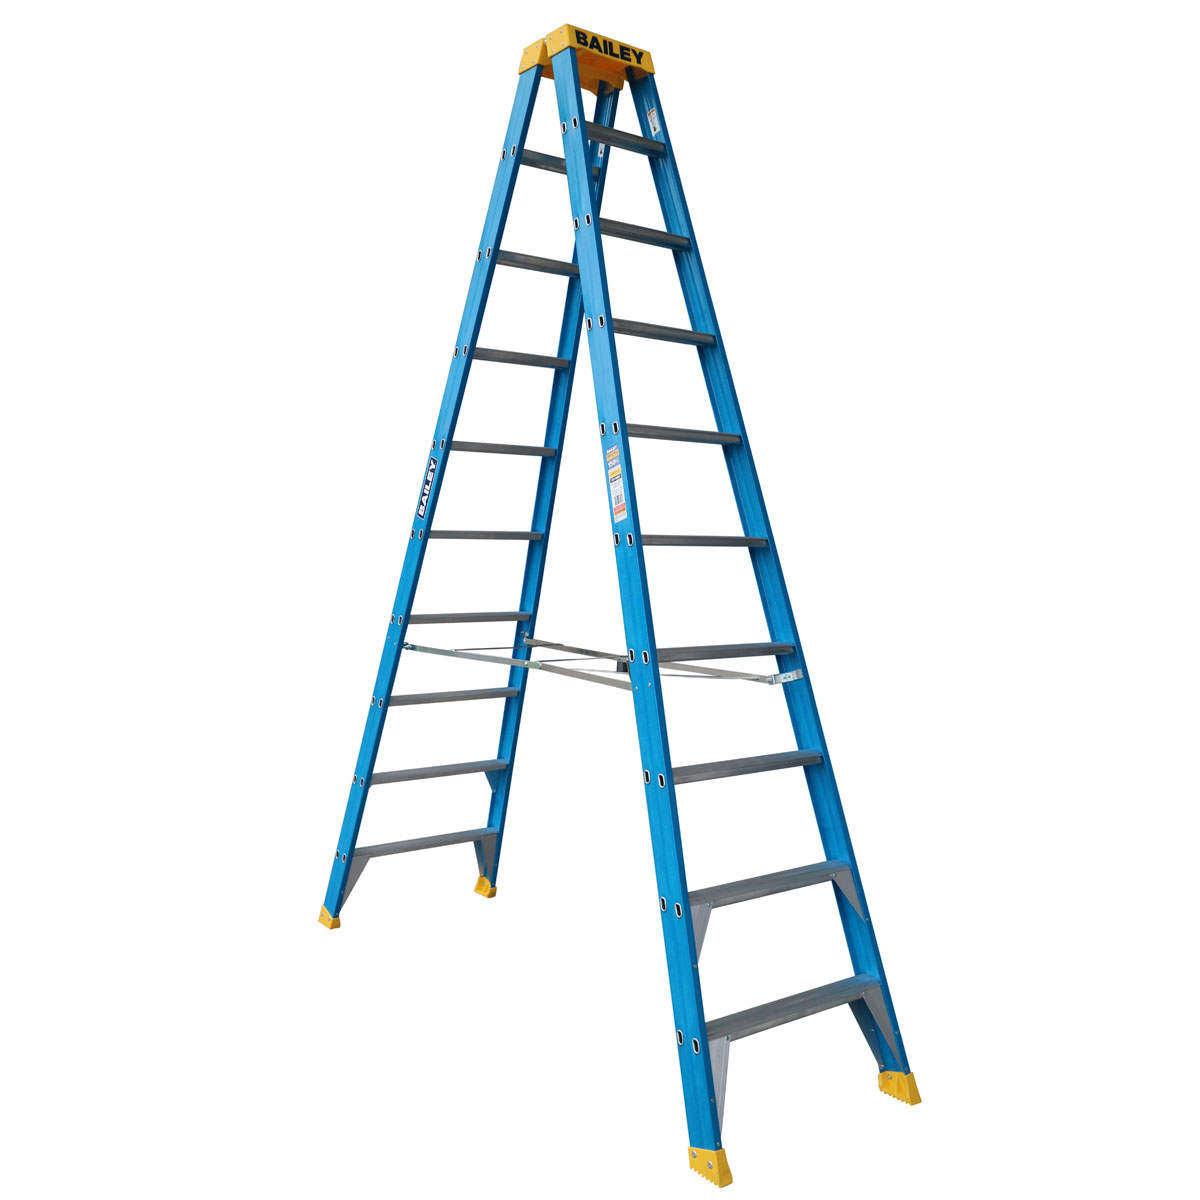 Ladder - Double Sided Fibreglass Bailey Industrial Punchlock 150kg 10-Step 3.0M